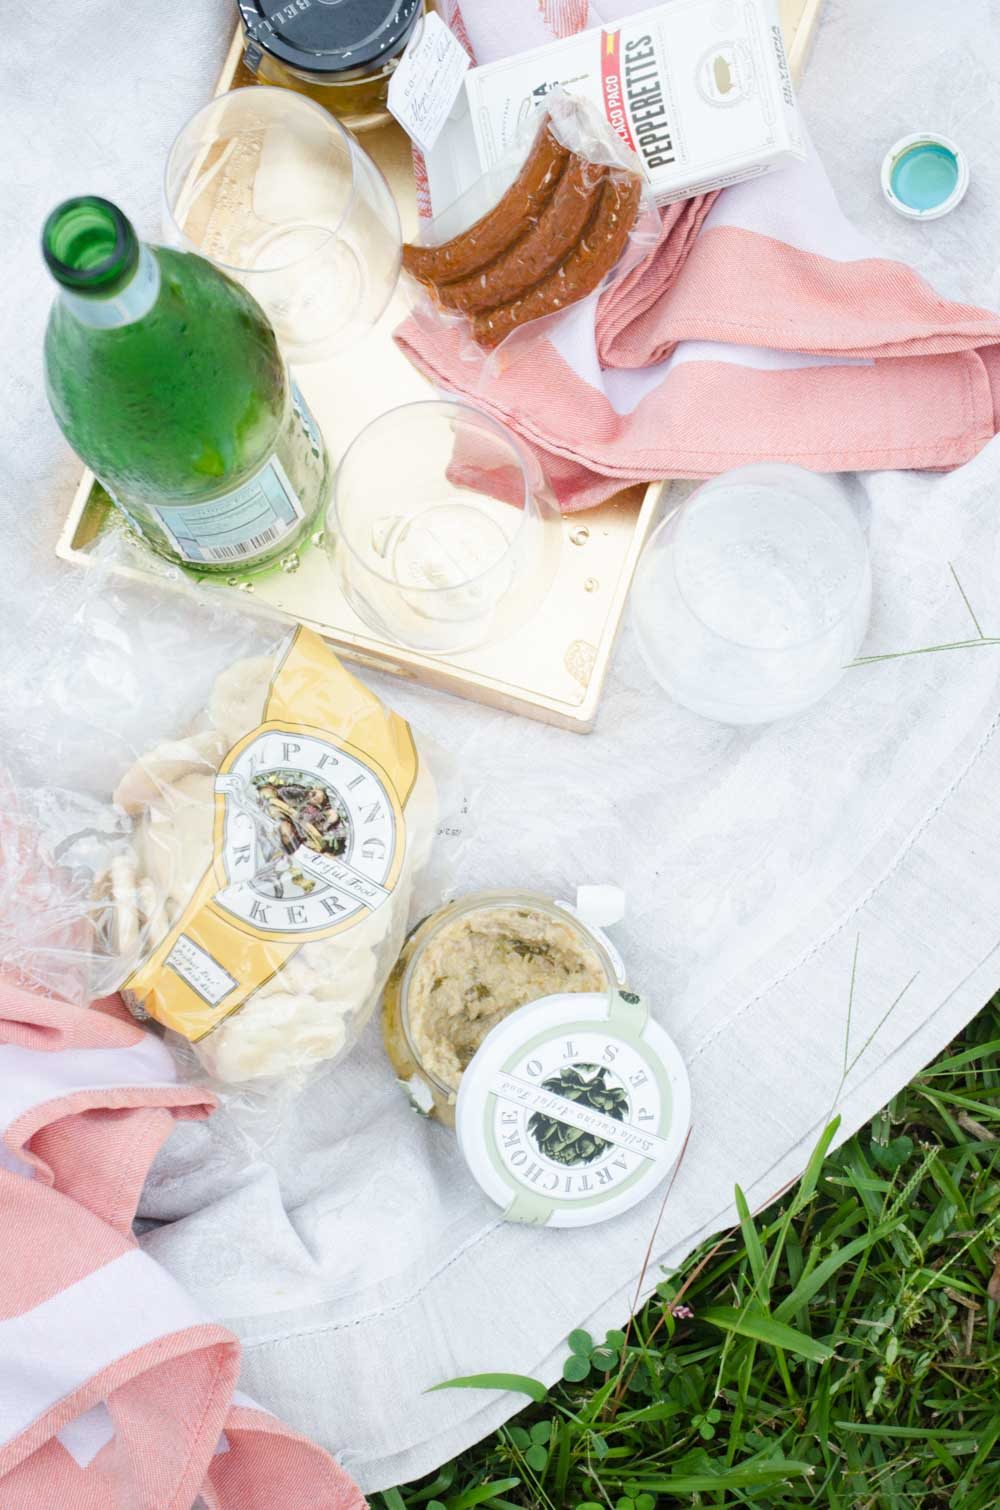 Elegant host gifts picnic essentials with Sesame